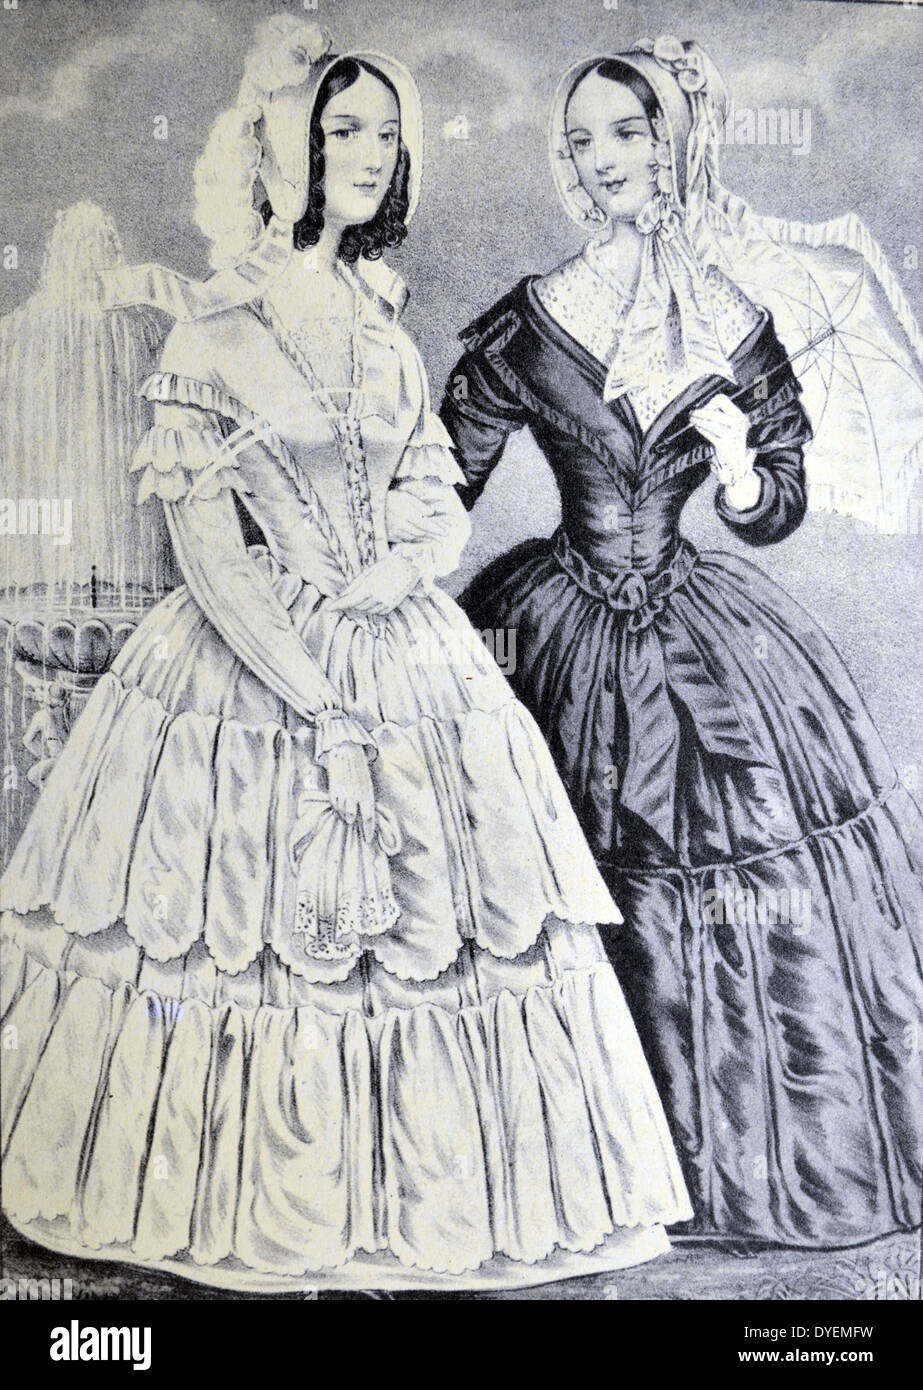 Currier & Ives Illustration 19th Century. The Sisters - Stock Image